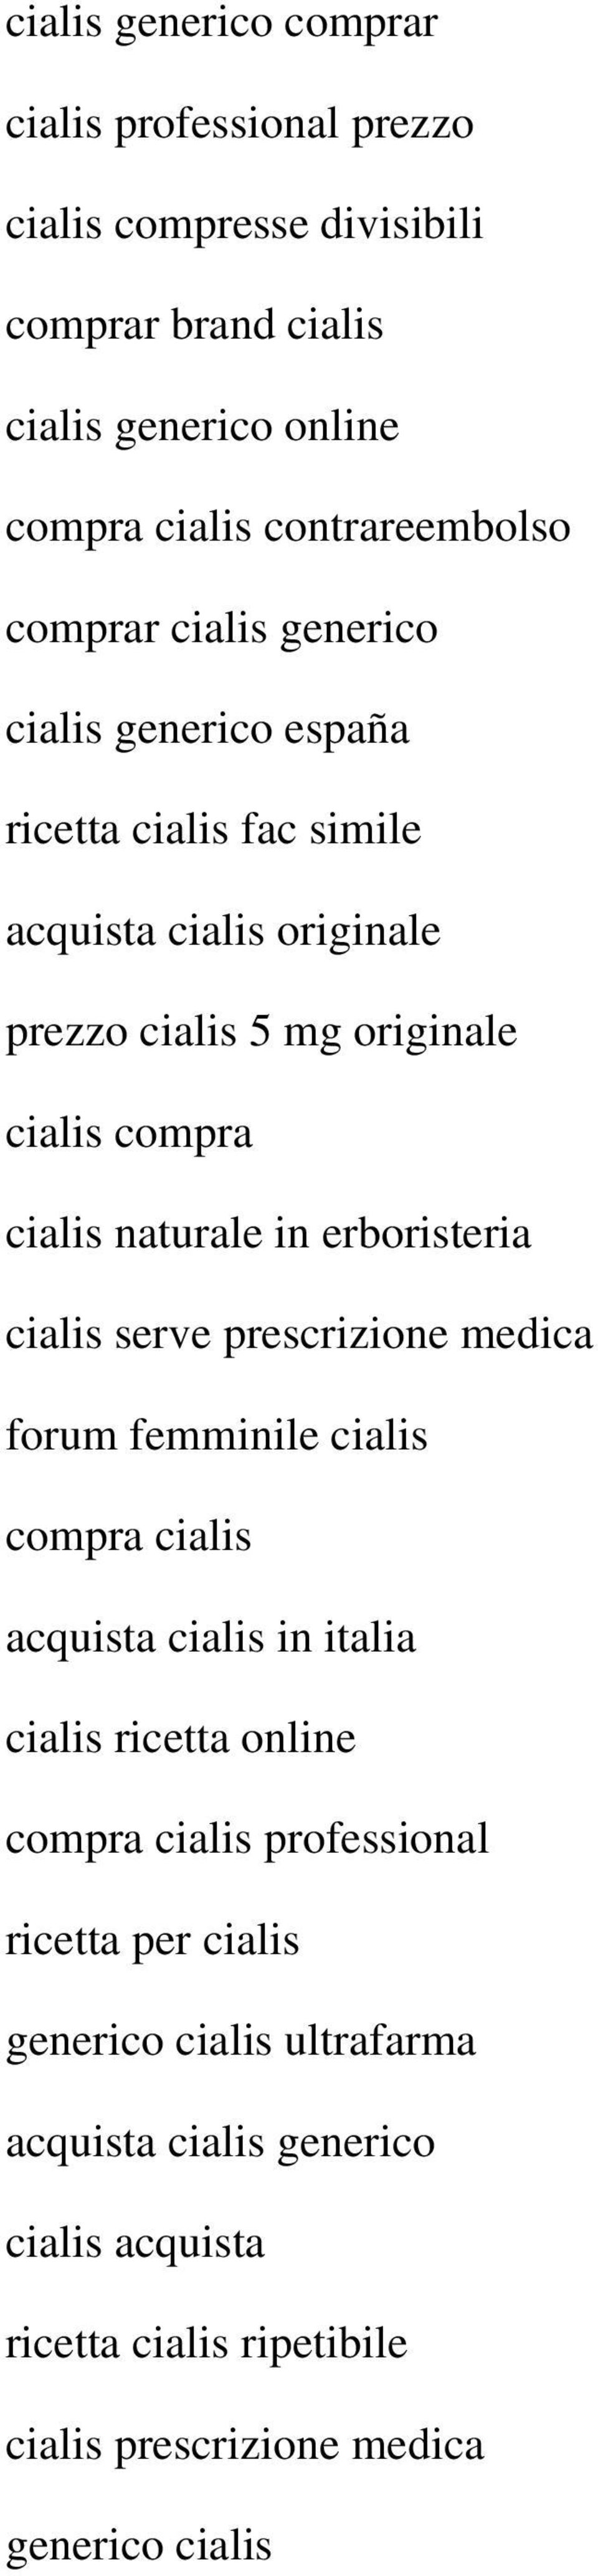 Generic cialis europe.doc - Buying Cialis Online Forum Buy Online Without Prescription Cialis Works By Expanding The Capillary In The Penis Leading To A Online Europe Pharmacy